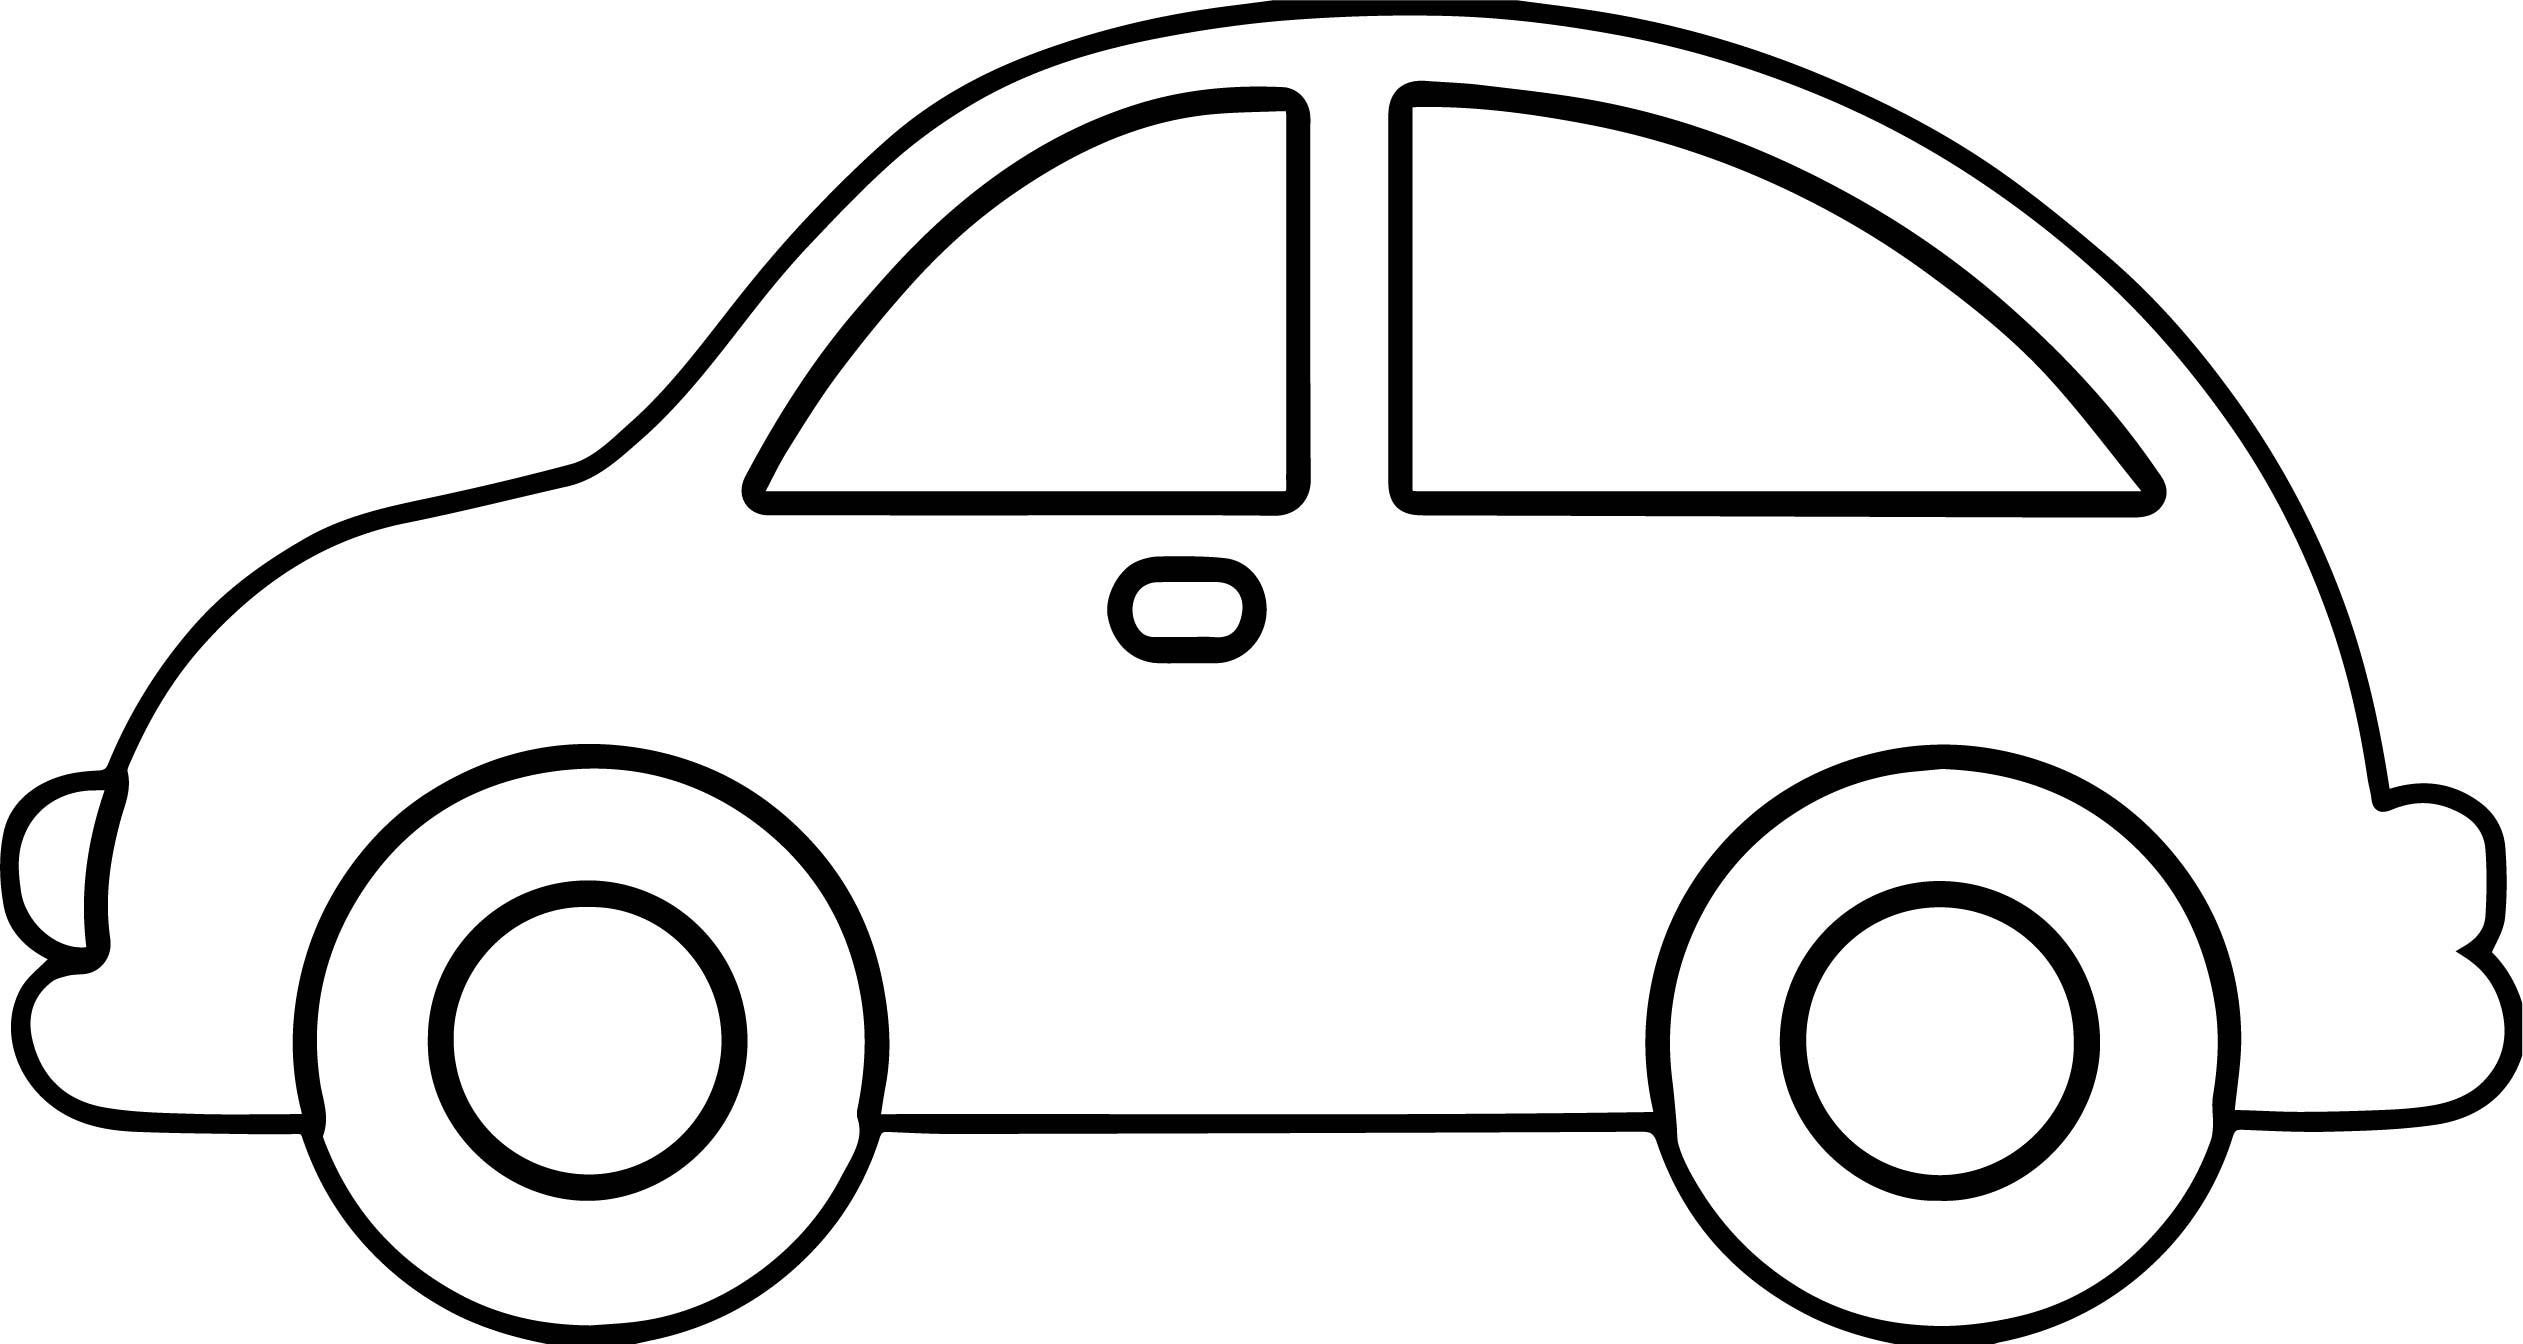 Vintage Antique Outline Car Coloring Page